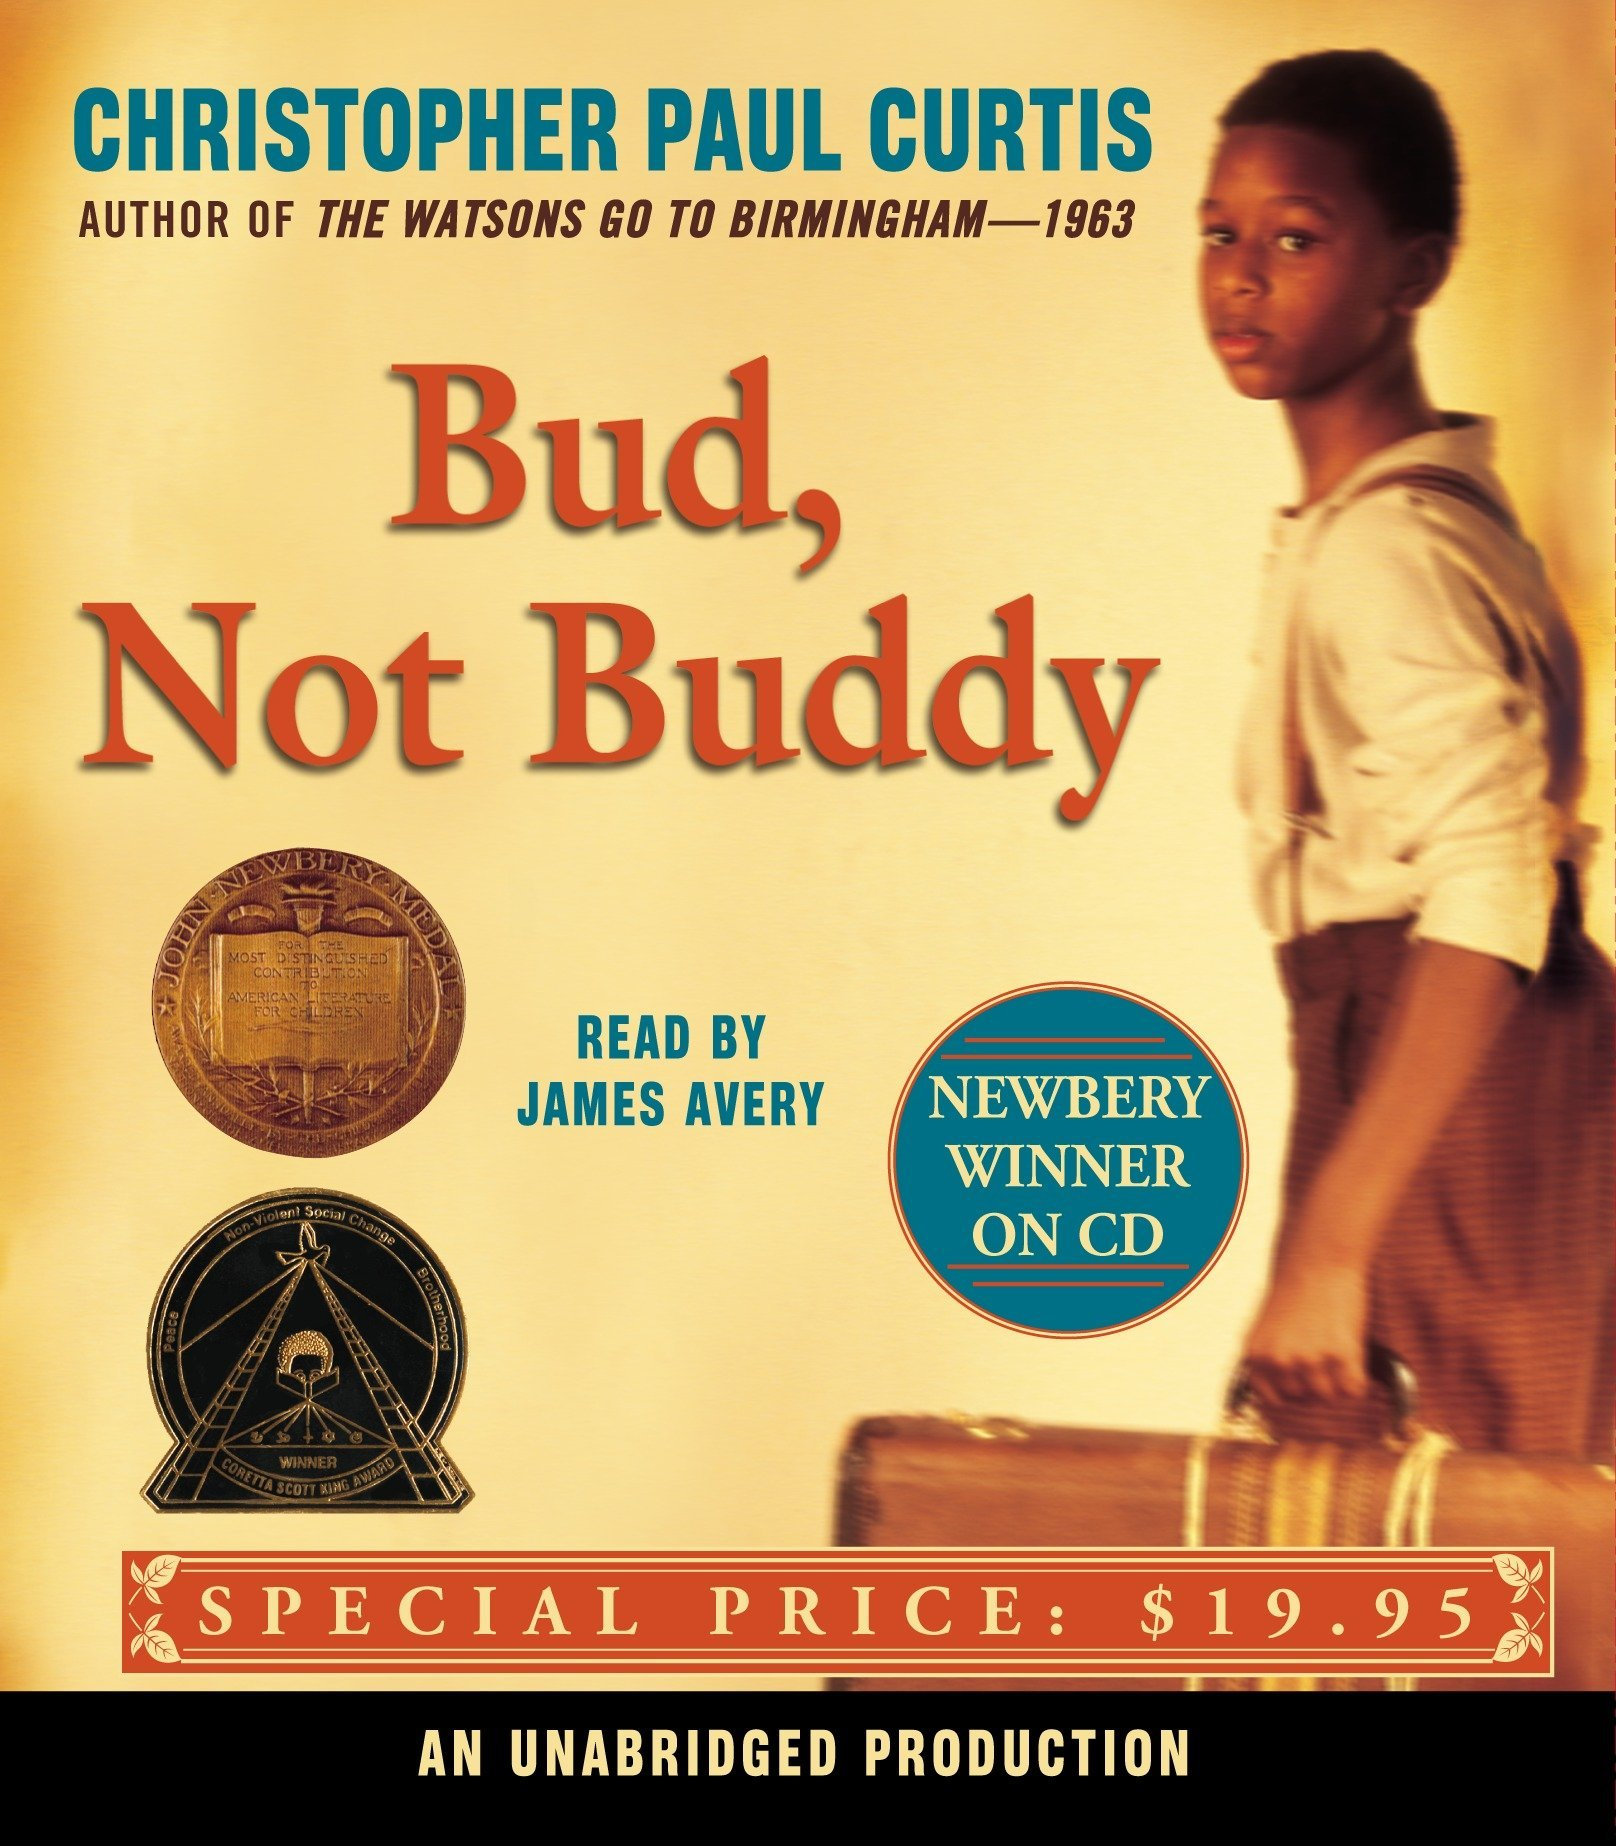 bud not buddy christopher paul curtis james avery 9780739331798